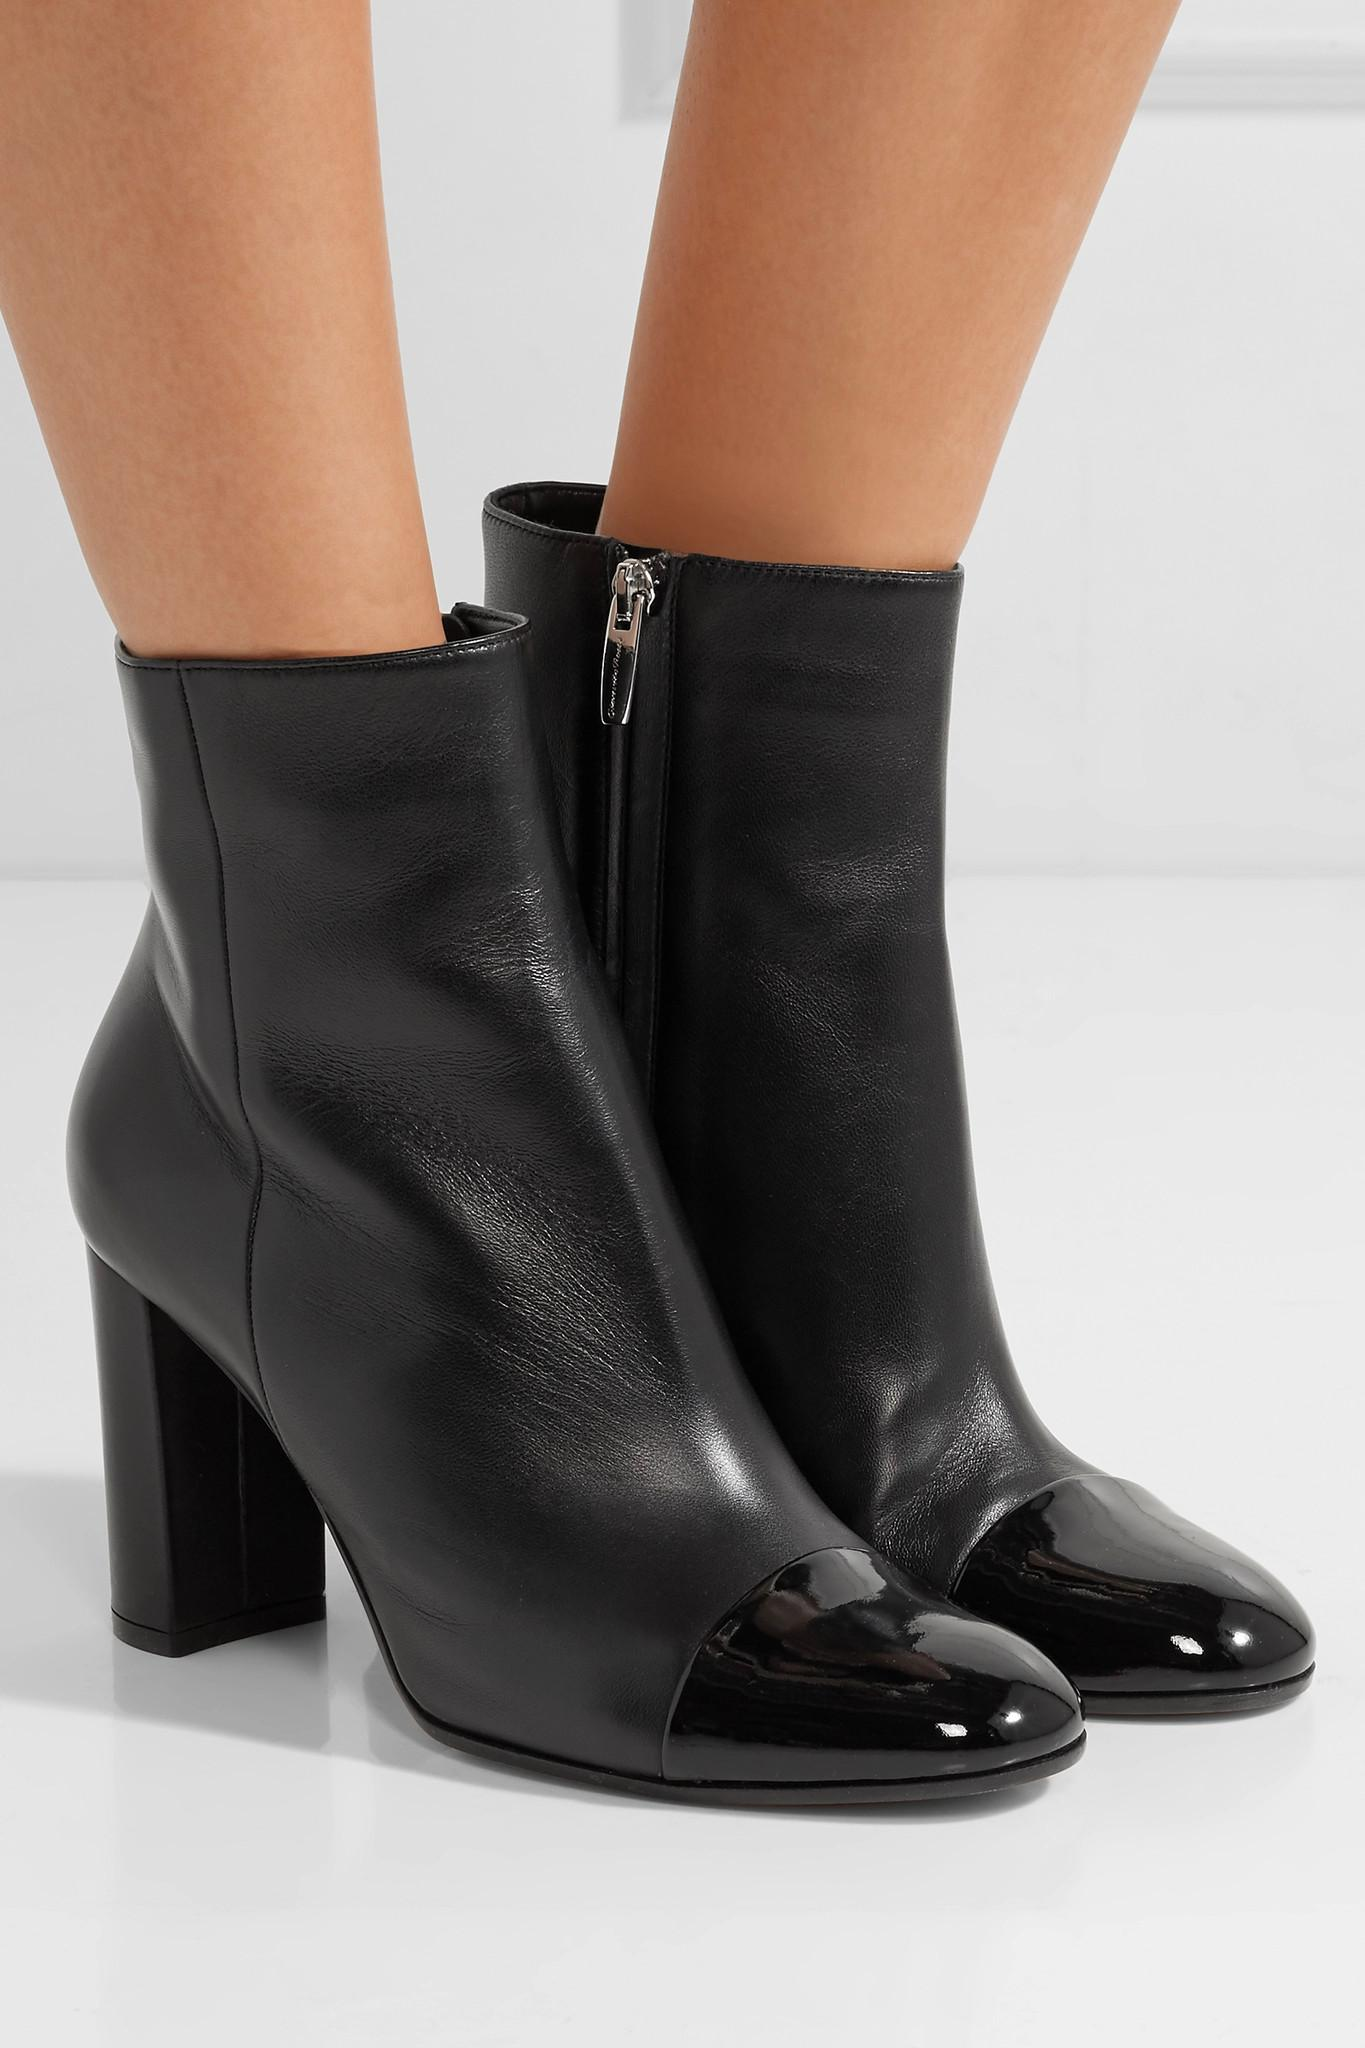 Black Boots Patent Ankle Lyst In And Matte Rossi Leather Gianvito qAxBzwUH